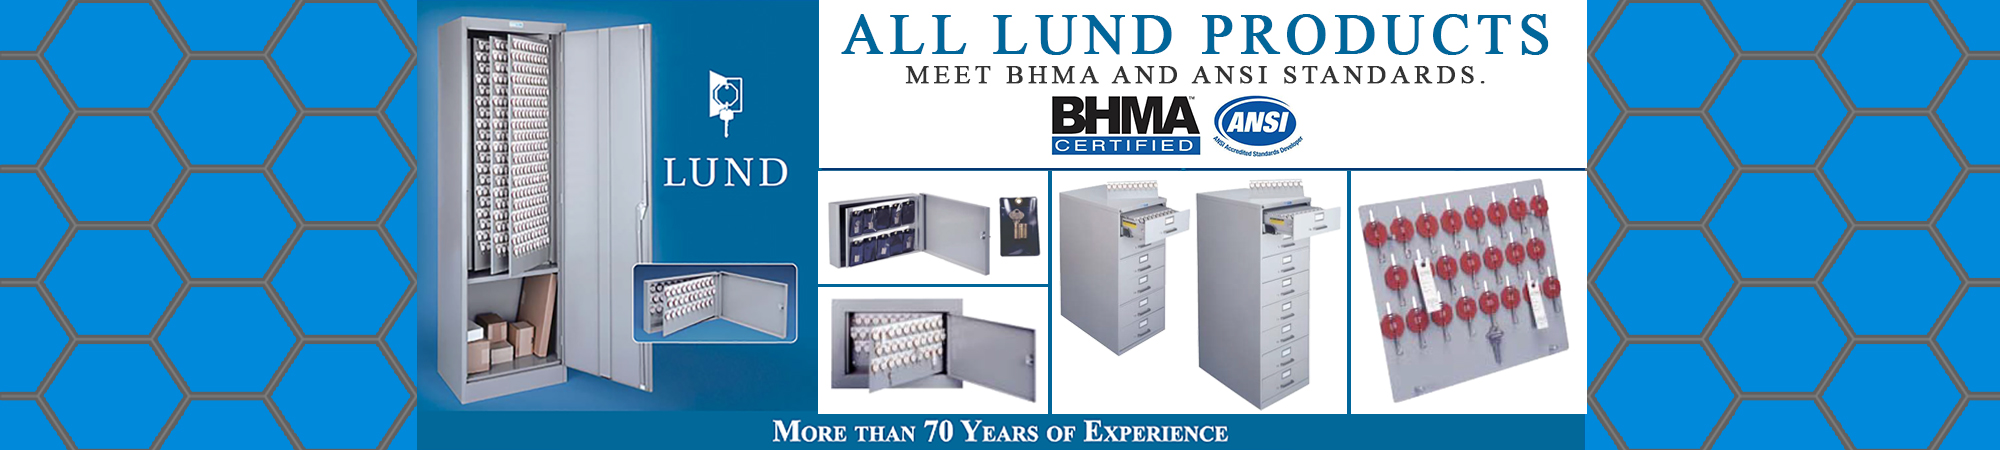 Key Storage Manufacturer | Lund Equipment